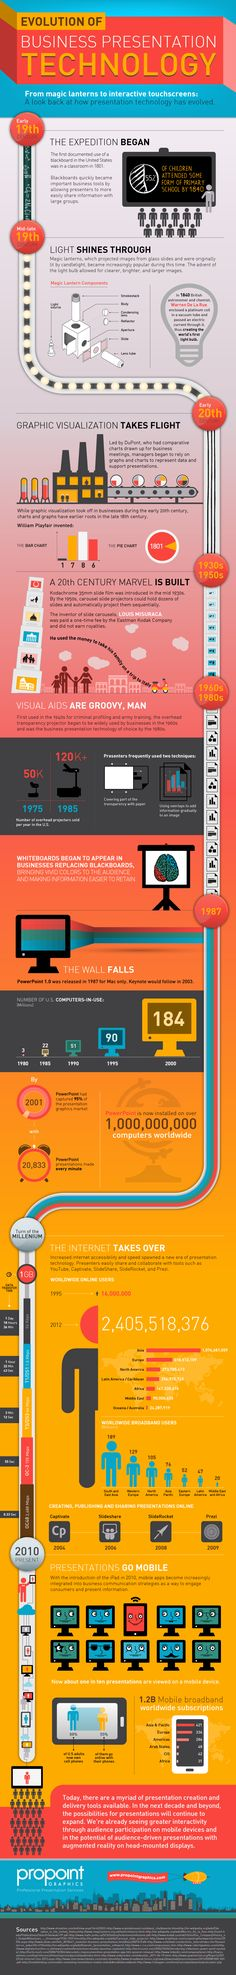 This infographic provides an in-depth account of the amazing progression of presentation technology over the past two centuries. From the blackboard i